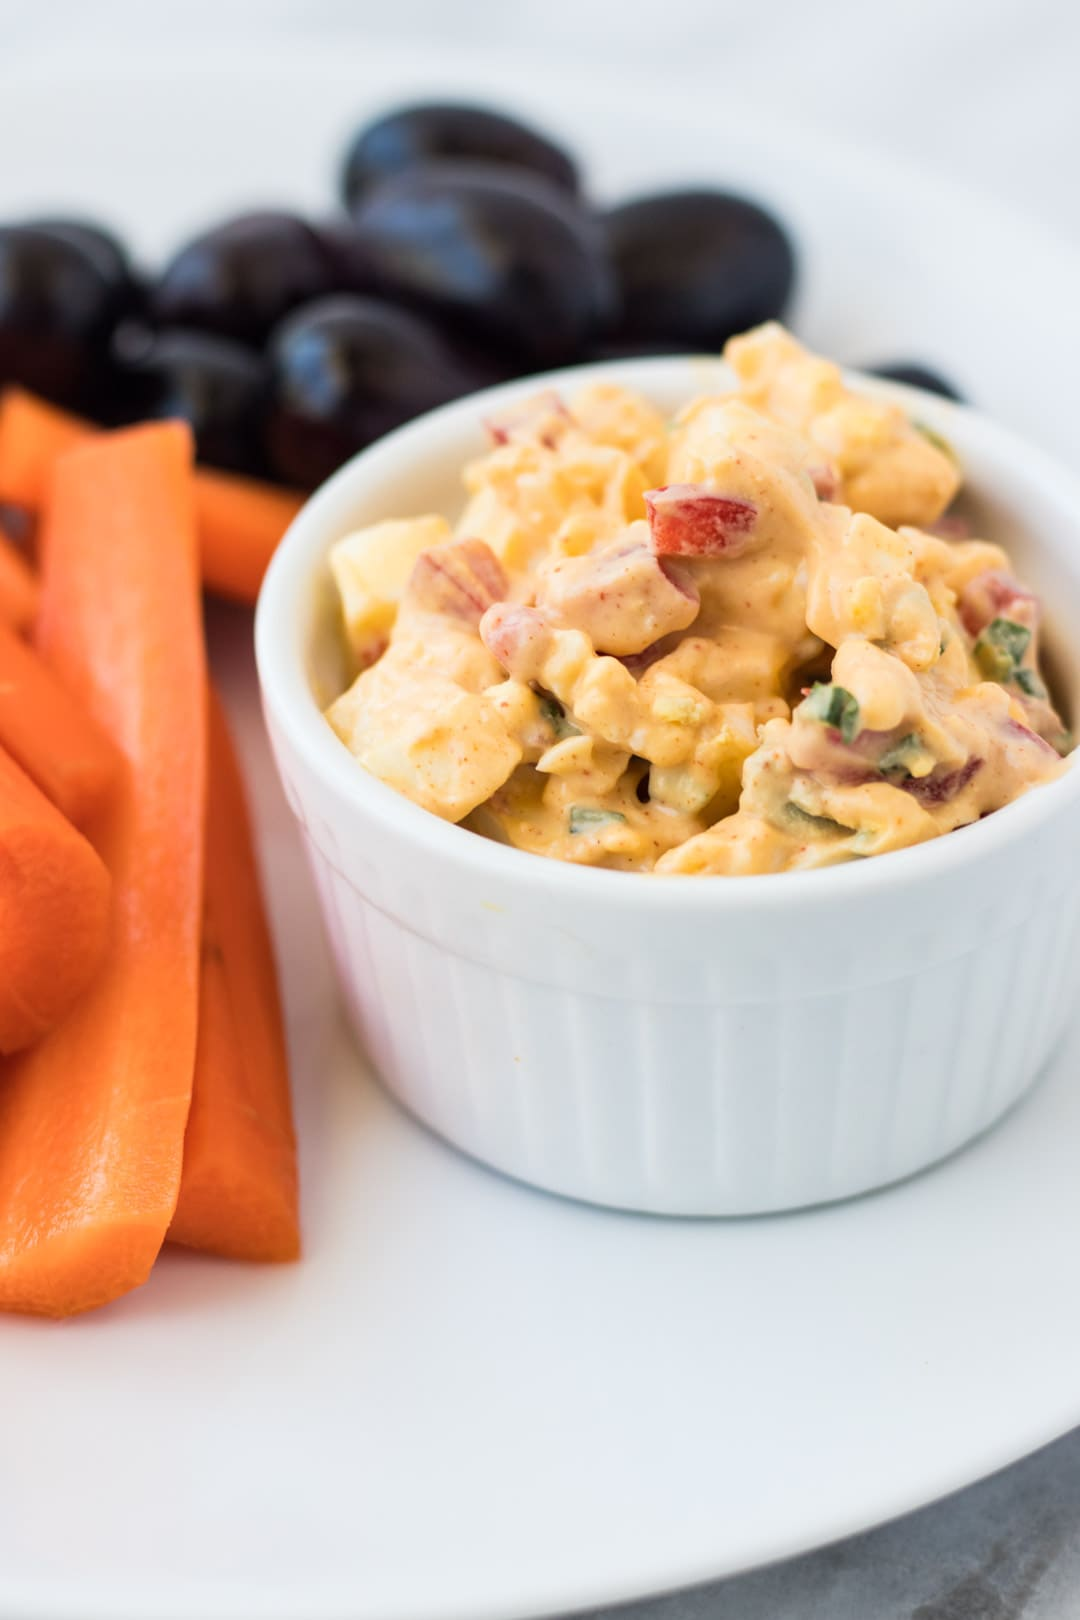 Dish of low FODMAP egg salad with carrot sticks and olives